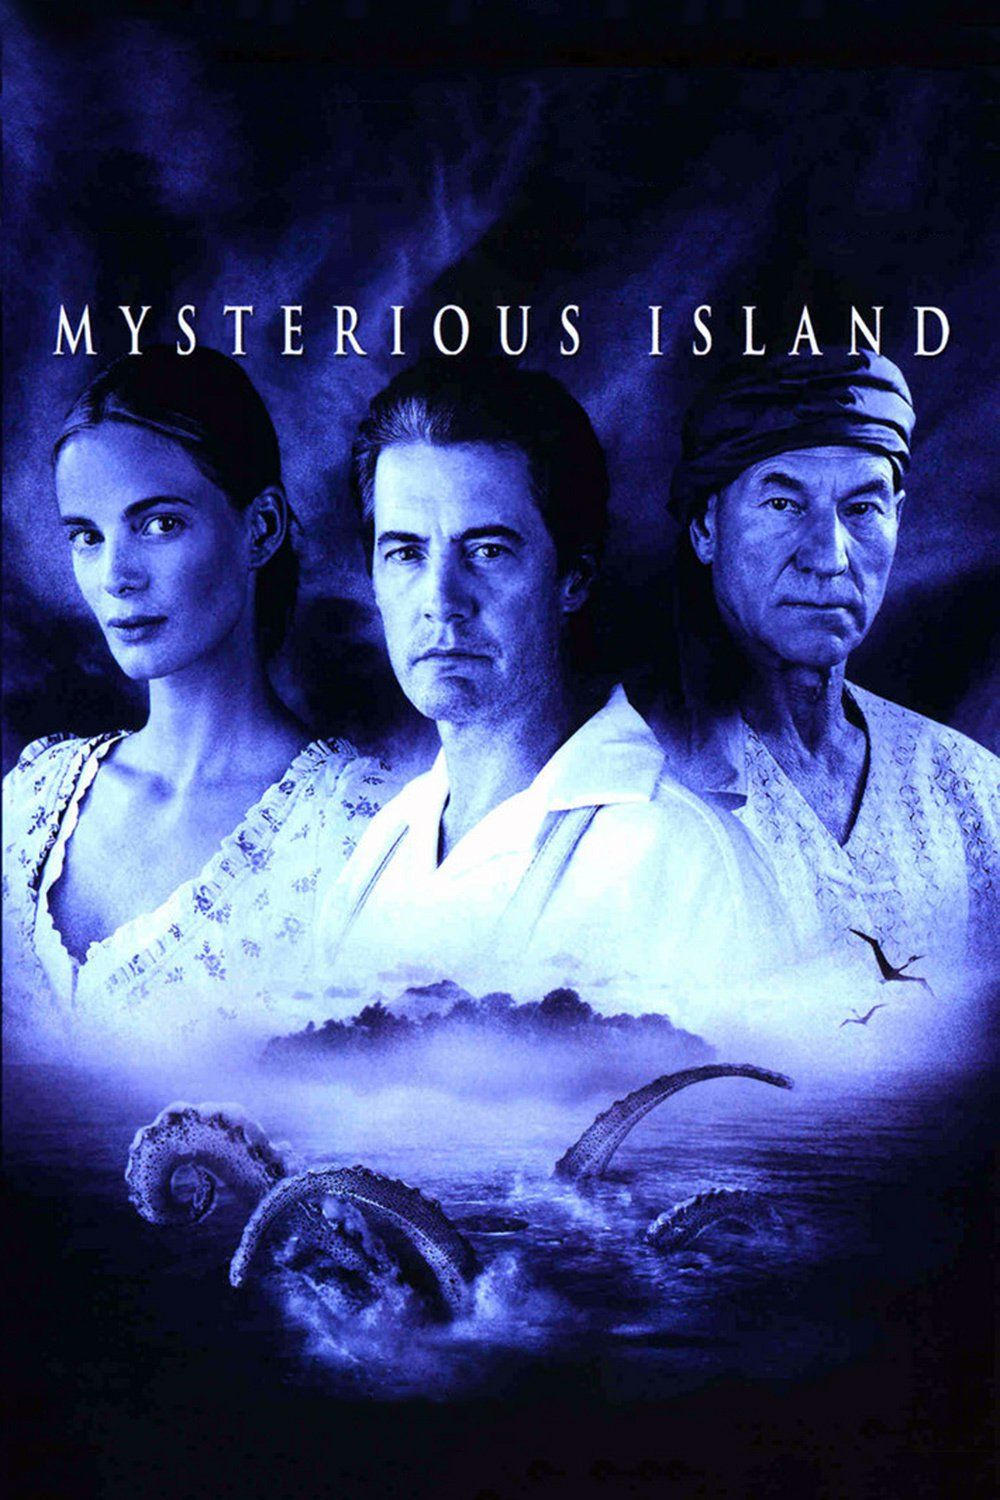 Mysterious Island (also called Jules Verne's Mysterious